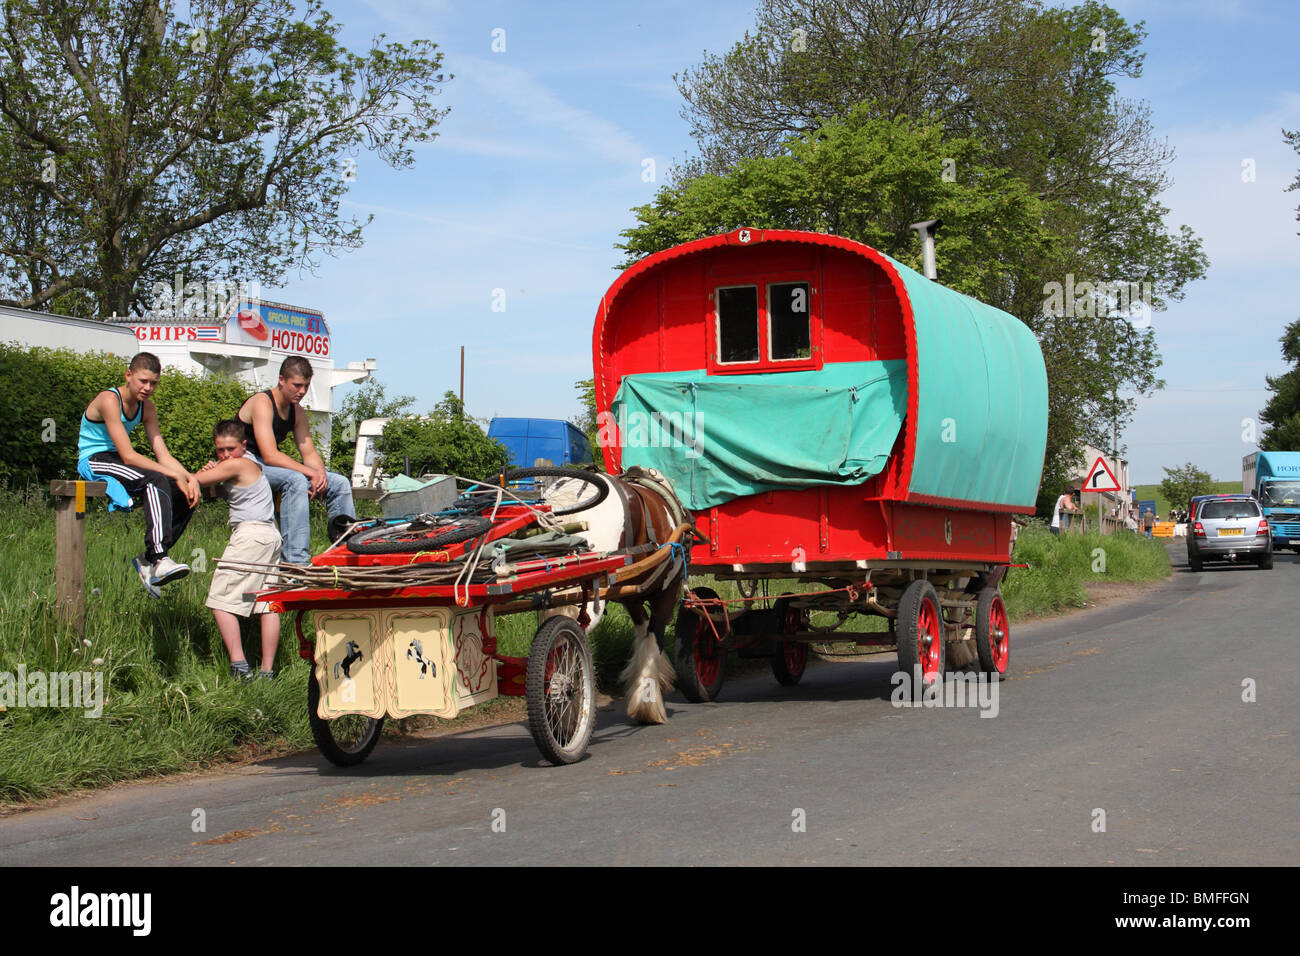 Travellers at the Appleby Horse Fair, Appleby-In-Westmorland, Cumbria, England, U.K. - Stock Image